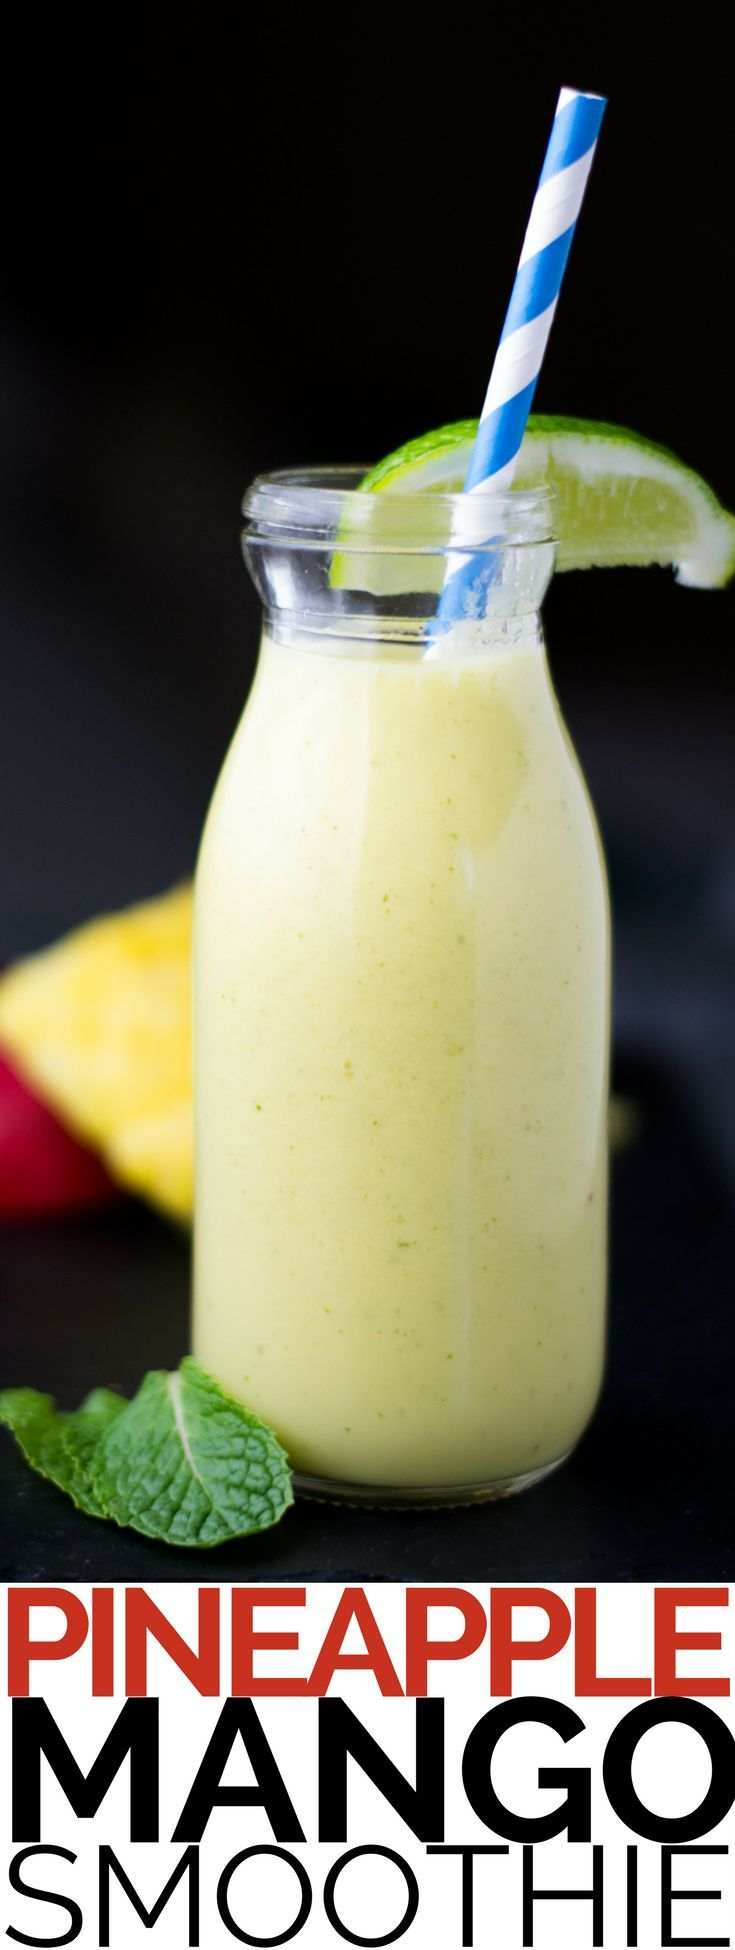 Our Thai-inspired Pineapple Smoothie adds mango, coconut milk and lime to highlight the tropical diversity of Thailand.